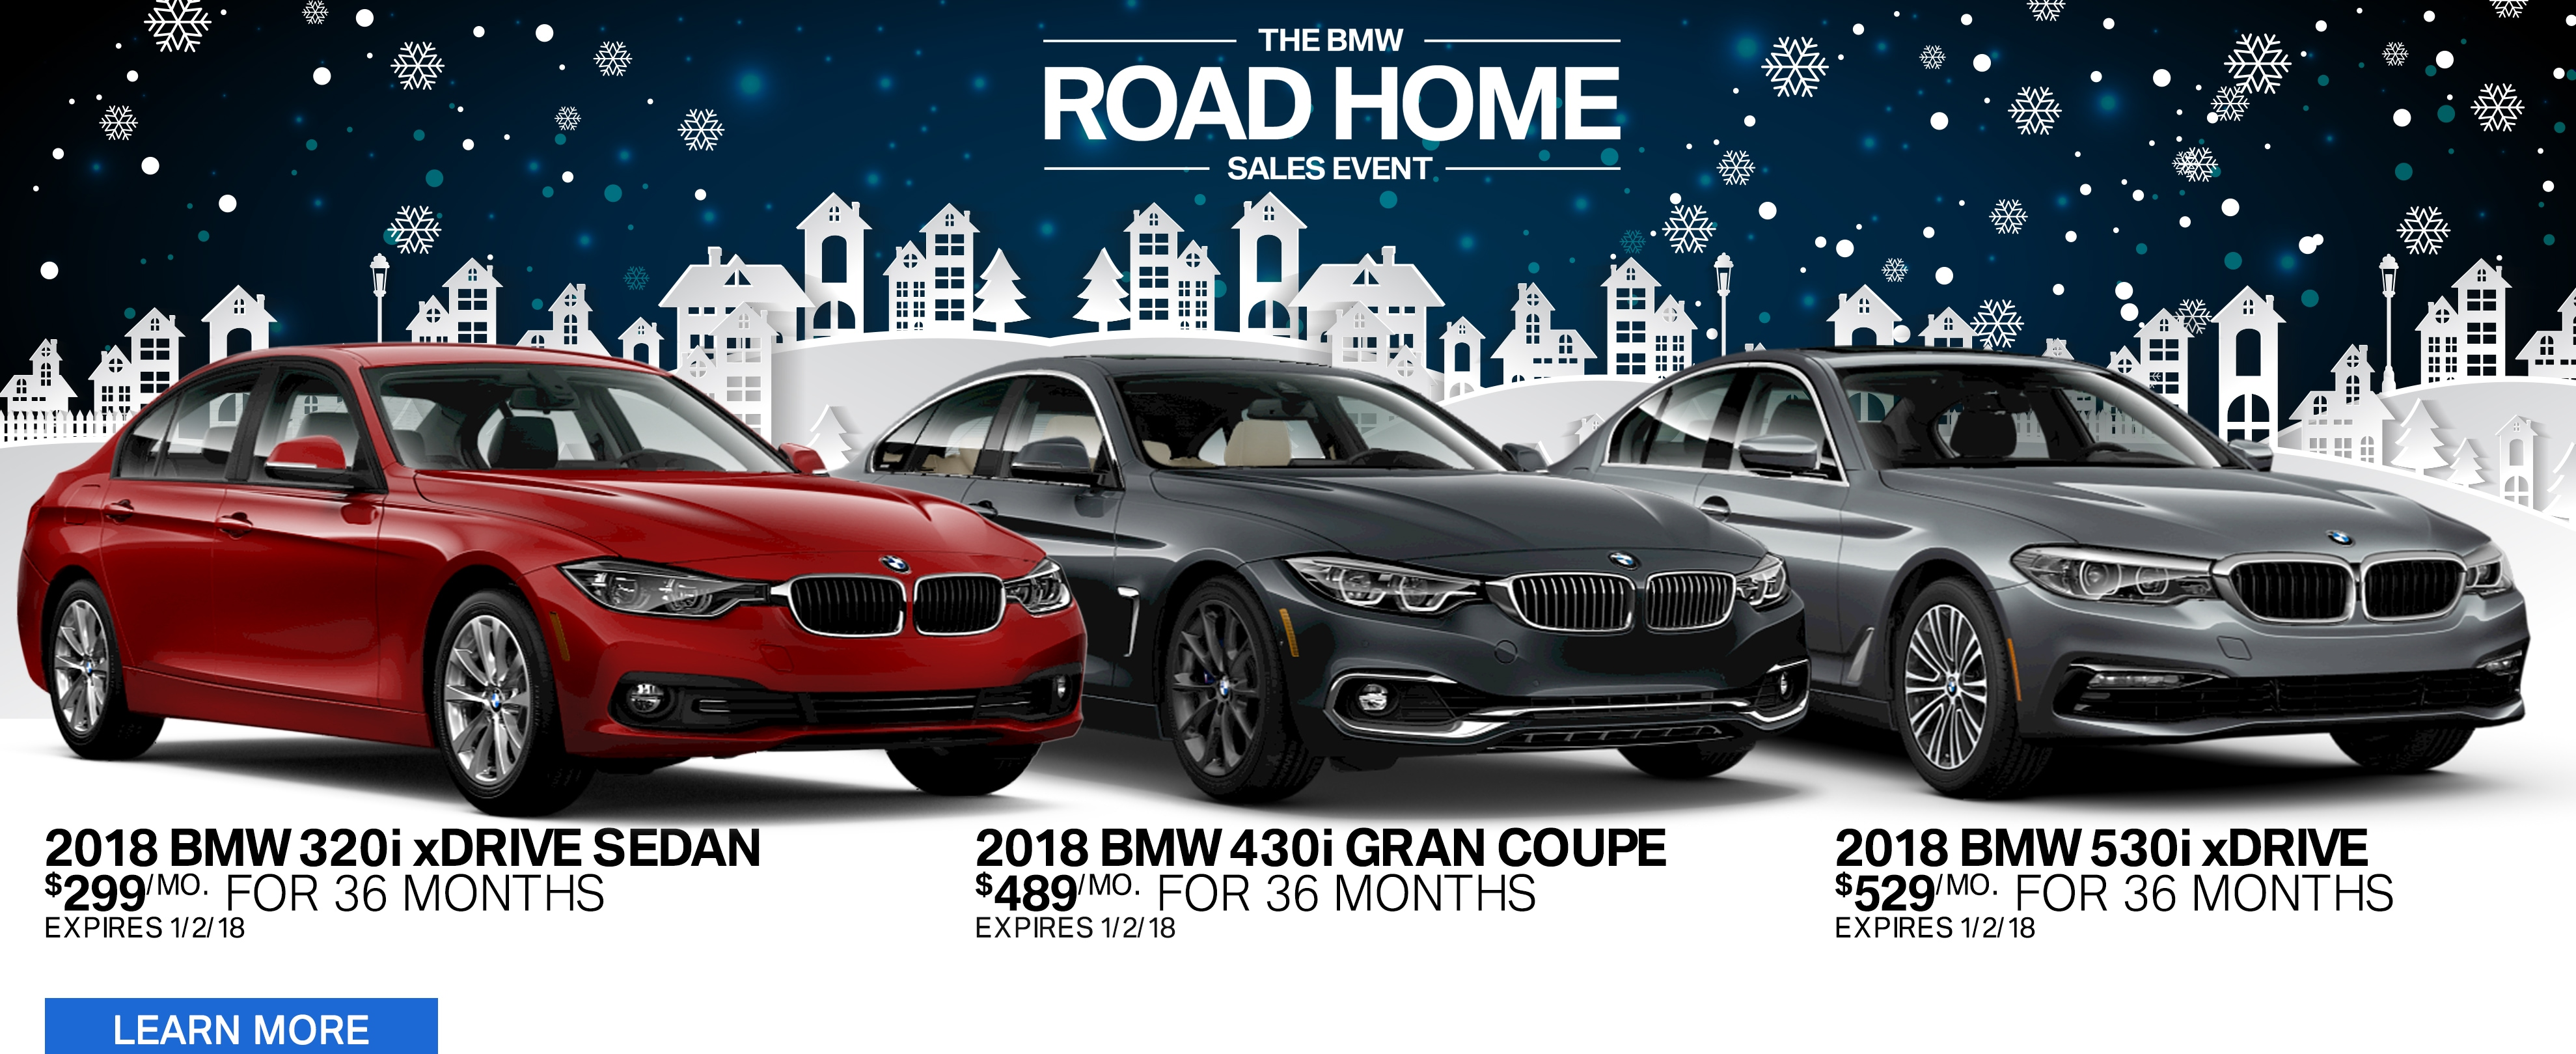 8194471783e6d2e91d685fca97c1f939x?impolicy=resize_crop&w=1900&h=776 new and used bmw dealer serving philadelphia bmw of mount laurel  at gsmx.co